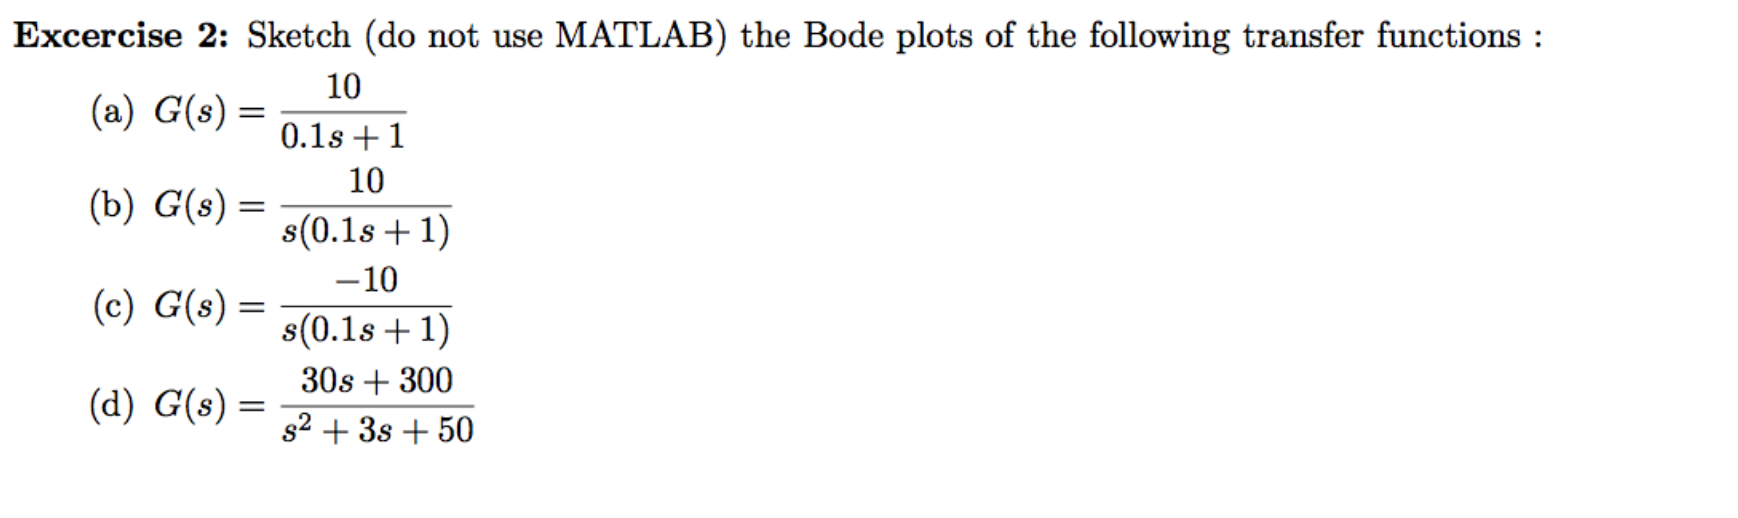 Excercise 2: Sketch (do not use MATLAB) the Bode plots of the following transfer functions: 10 (a) G(s) 0.1s1 10 (b) G(s) = s(0.1s 1) -10 (c) G(s) s(0.1s 1) 30s300 (d) G(s) s23s50